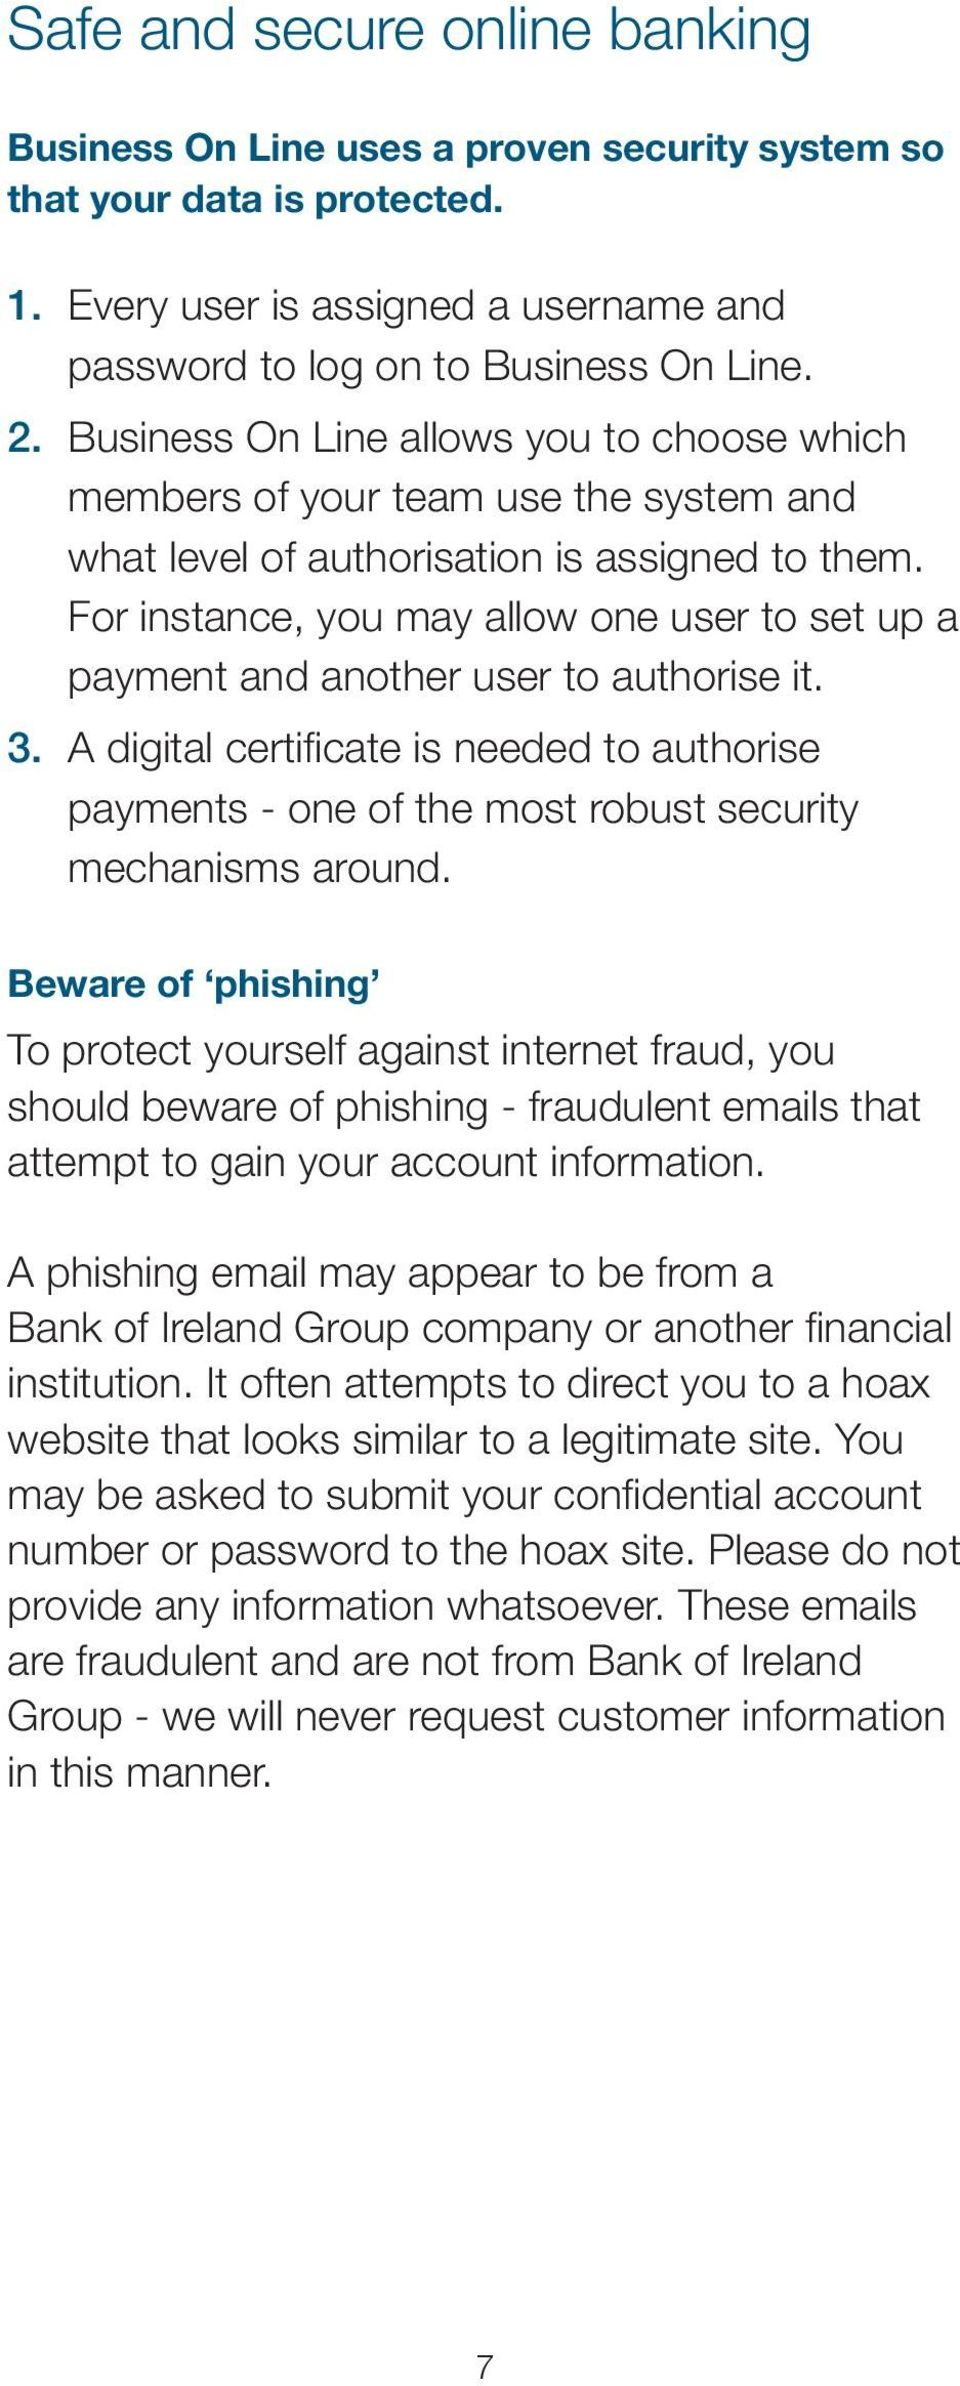 For instance, you may allow one user to set up a payment and another user to authorise it. 3. A digital certificate is needed to authorise payments - one of the most robust security mechanisms around.